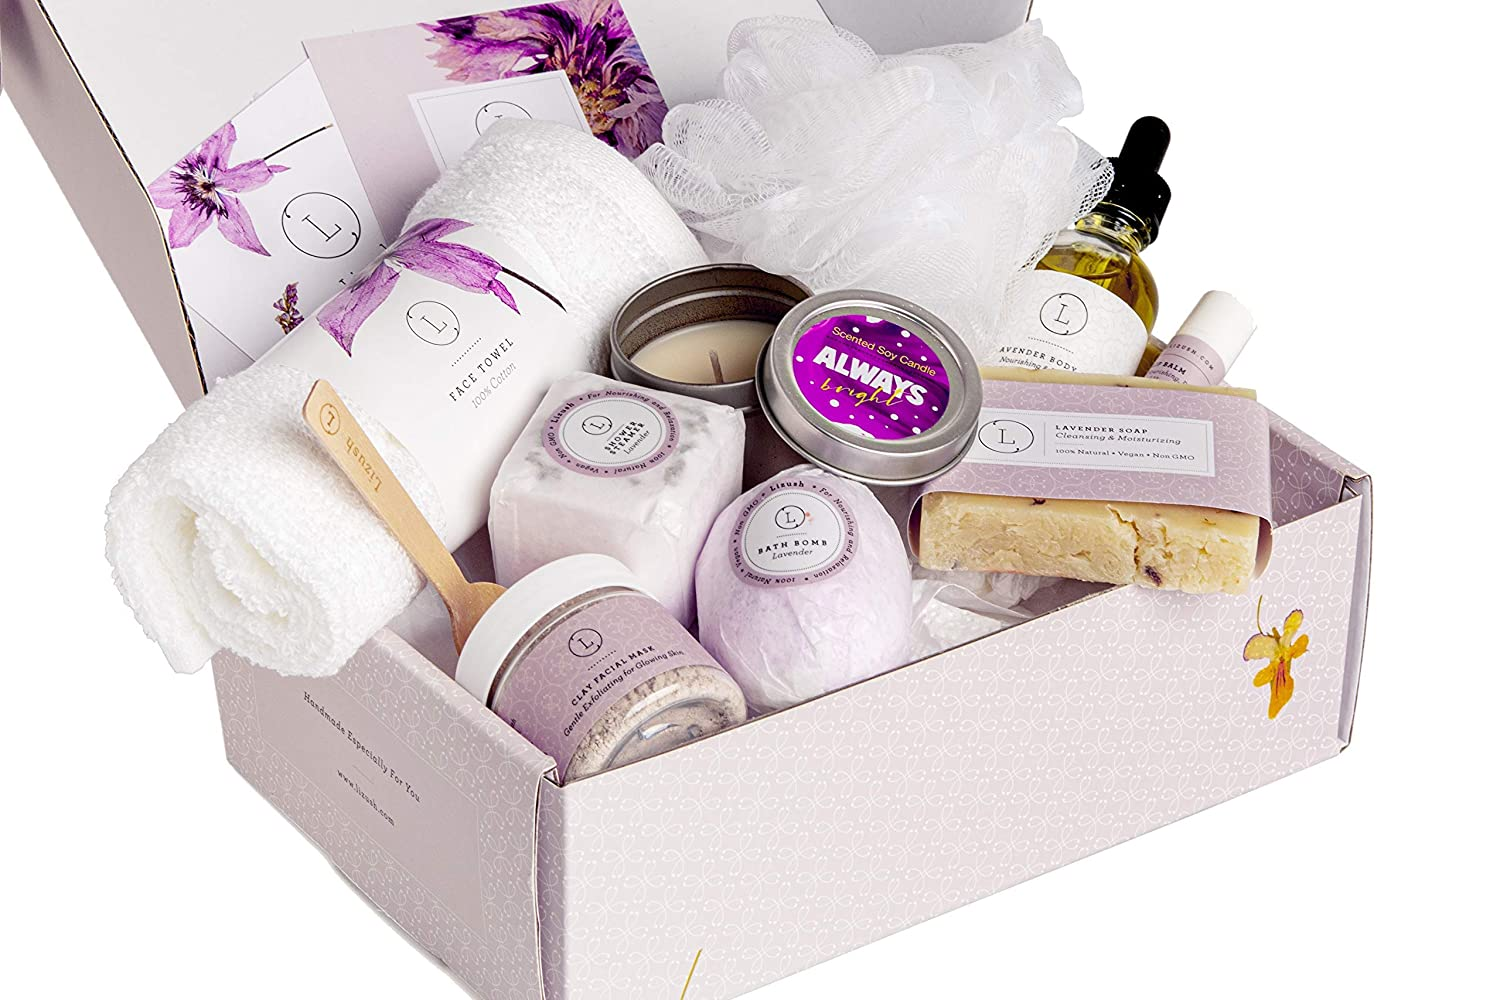 20 Best Handmade Beauty Products For The Perfect Gifts